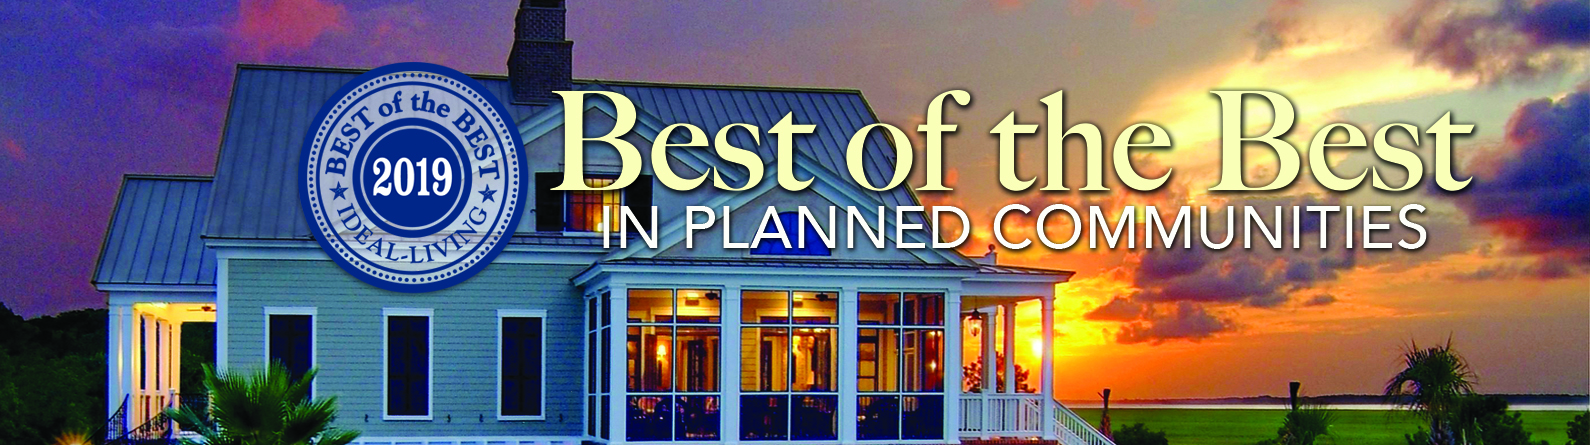 The 2019 Best of the Best in Planned Communities